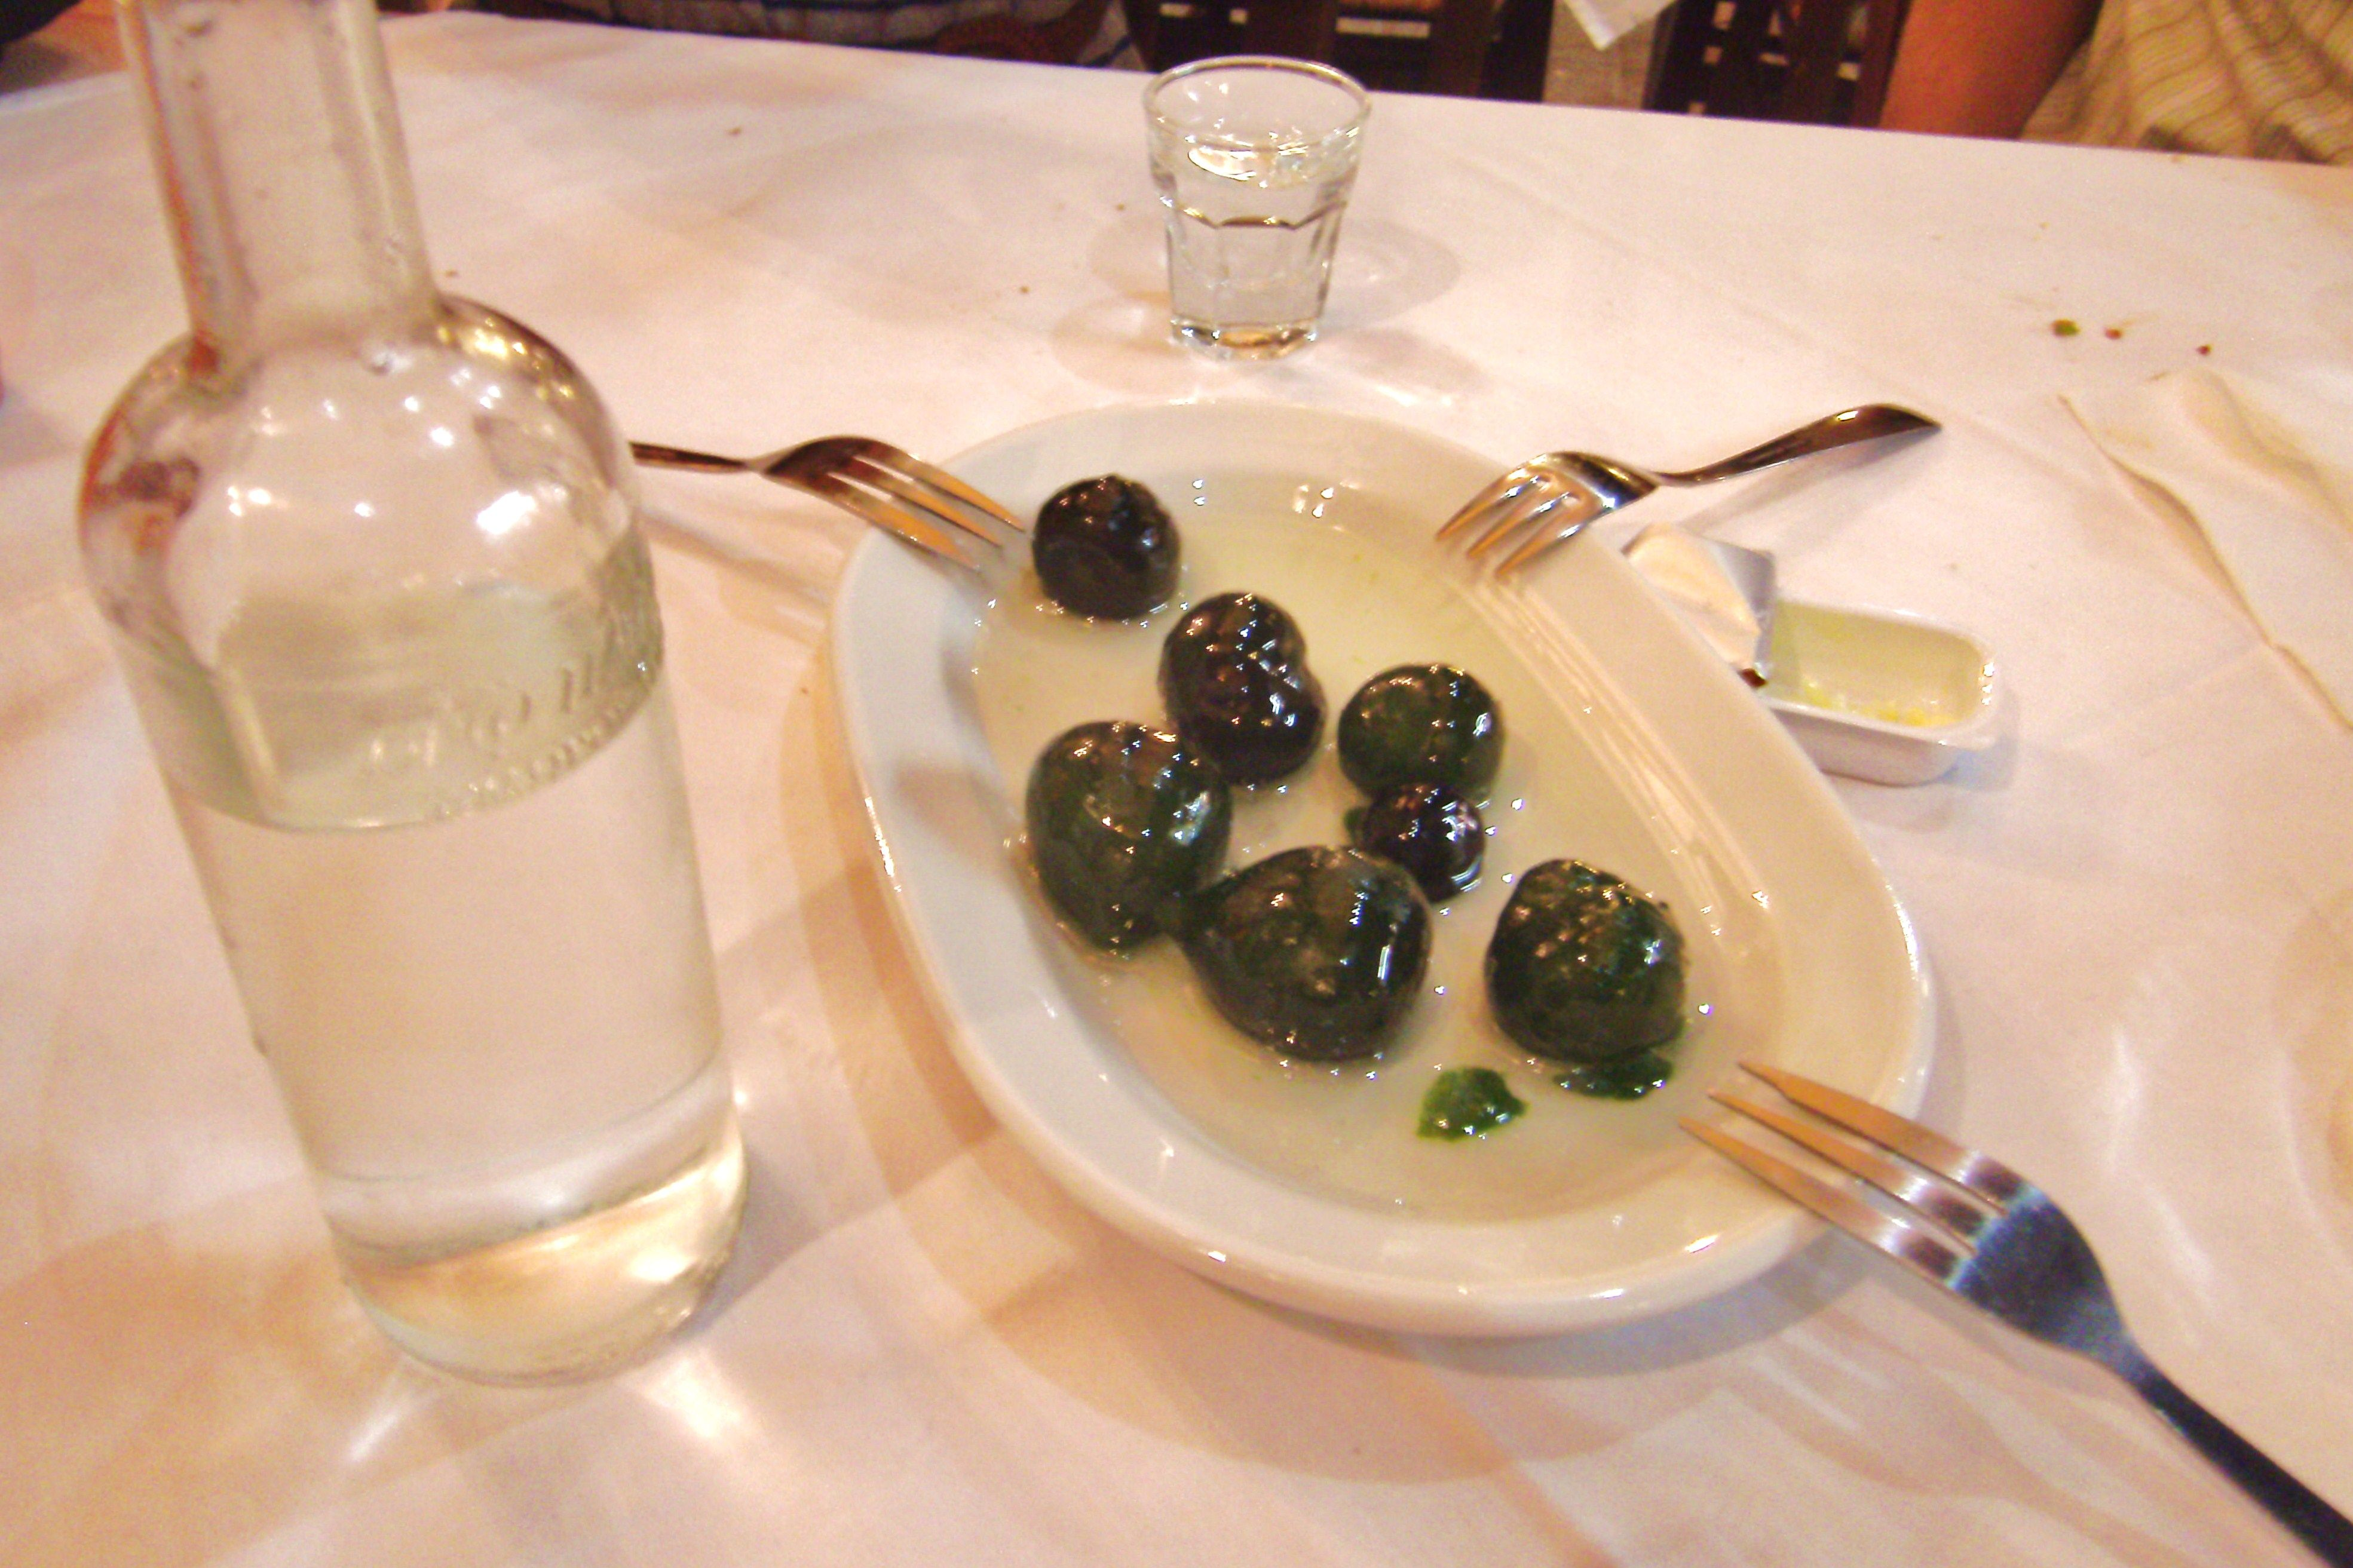 This has to be the most memorable dessert I have ever had~ Candied green figs in a light syrup served with a bottle of Greek version of grappa........Kos, Greece 2011